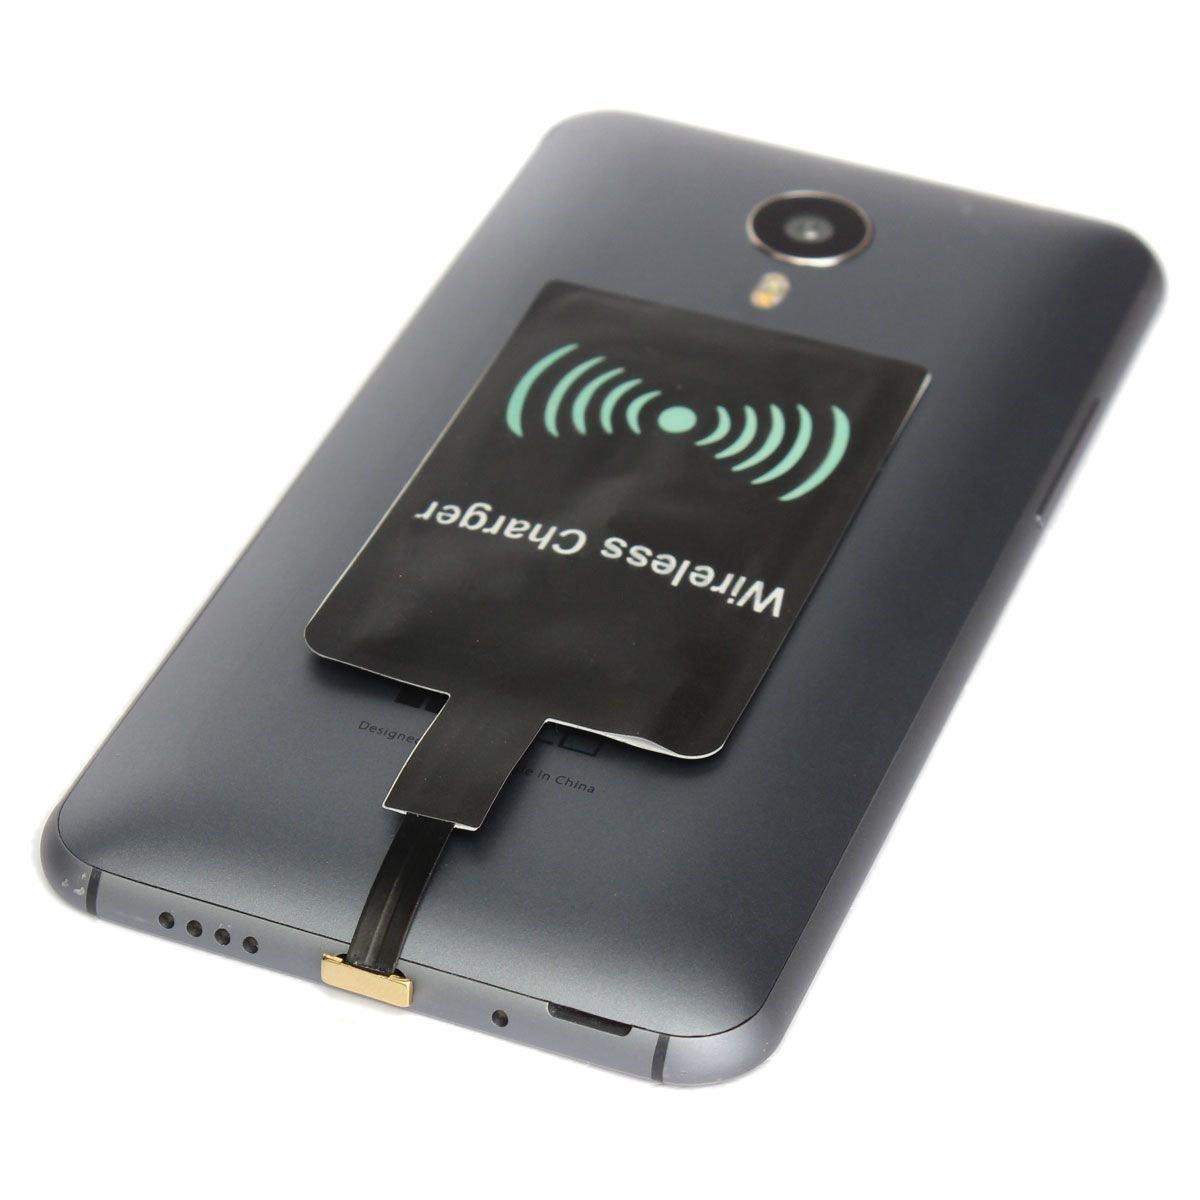 SODIAL Mirco USB Qi Wireless Charger Charging Receiver Chip Android Cellphone Black, Narrow side upwards by SODIAL (Image #2)